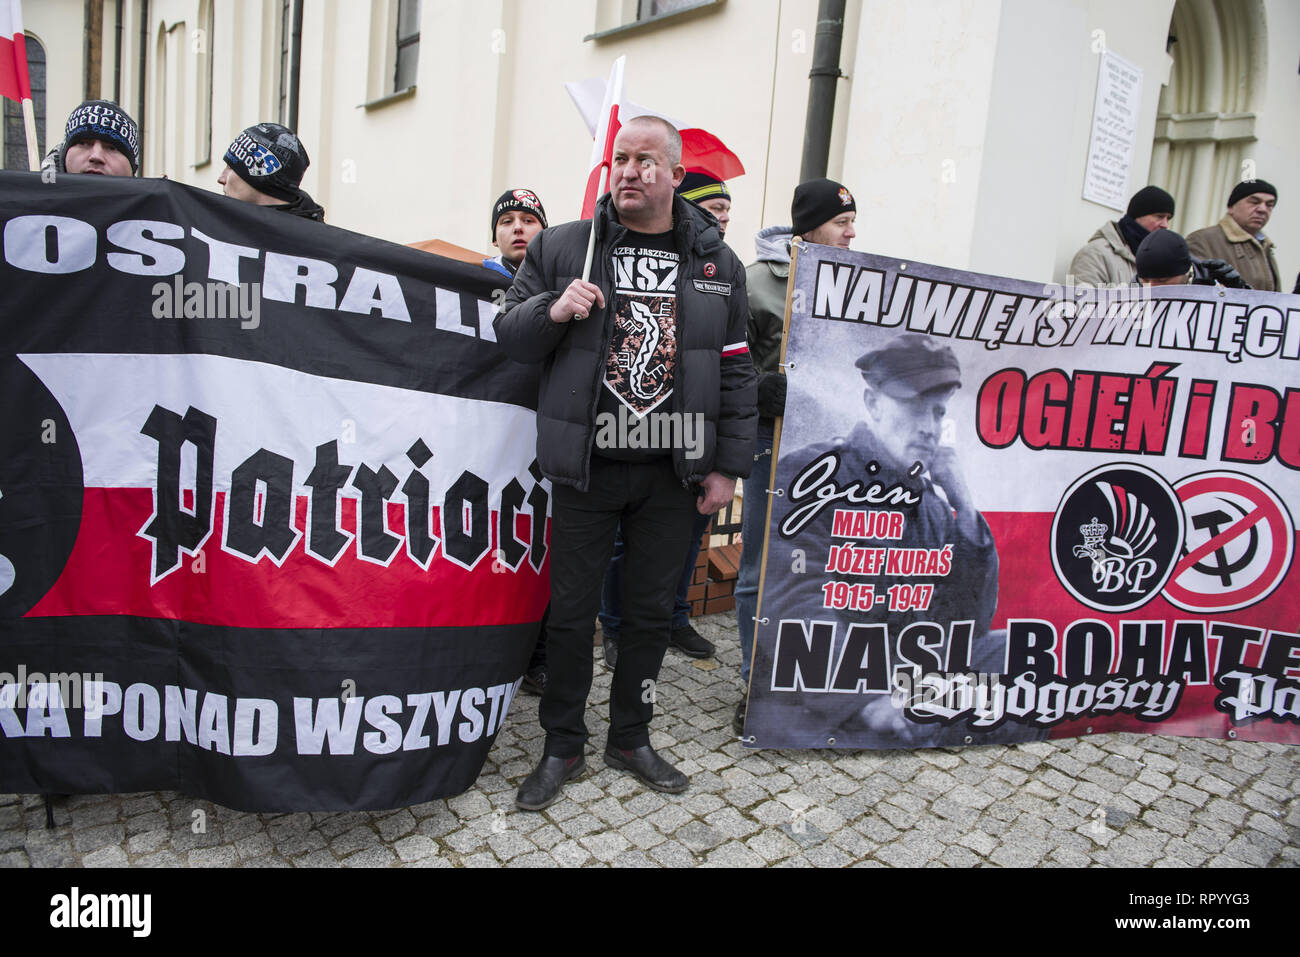 Hajnowka, Poldlaskie, Poland. 23rd Feb, 2019. A man see standing next to banners during commemorative.Polish nationalists organized a commemorative march of the 'Cursed Soldiers'' in the city of Hajnowka next to the Belarusian border. The Cursed Soldiers also known as the Doomed Soldiers were anti-communist resistant fighters after WWII, however they were also famous of committing crimes against civilians, mostly ethnic Belarusians. Credit: Attila Husejnow/SOPA Images/ZUMA Wire/Alamy Live News - Stock Image